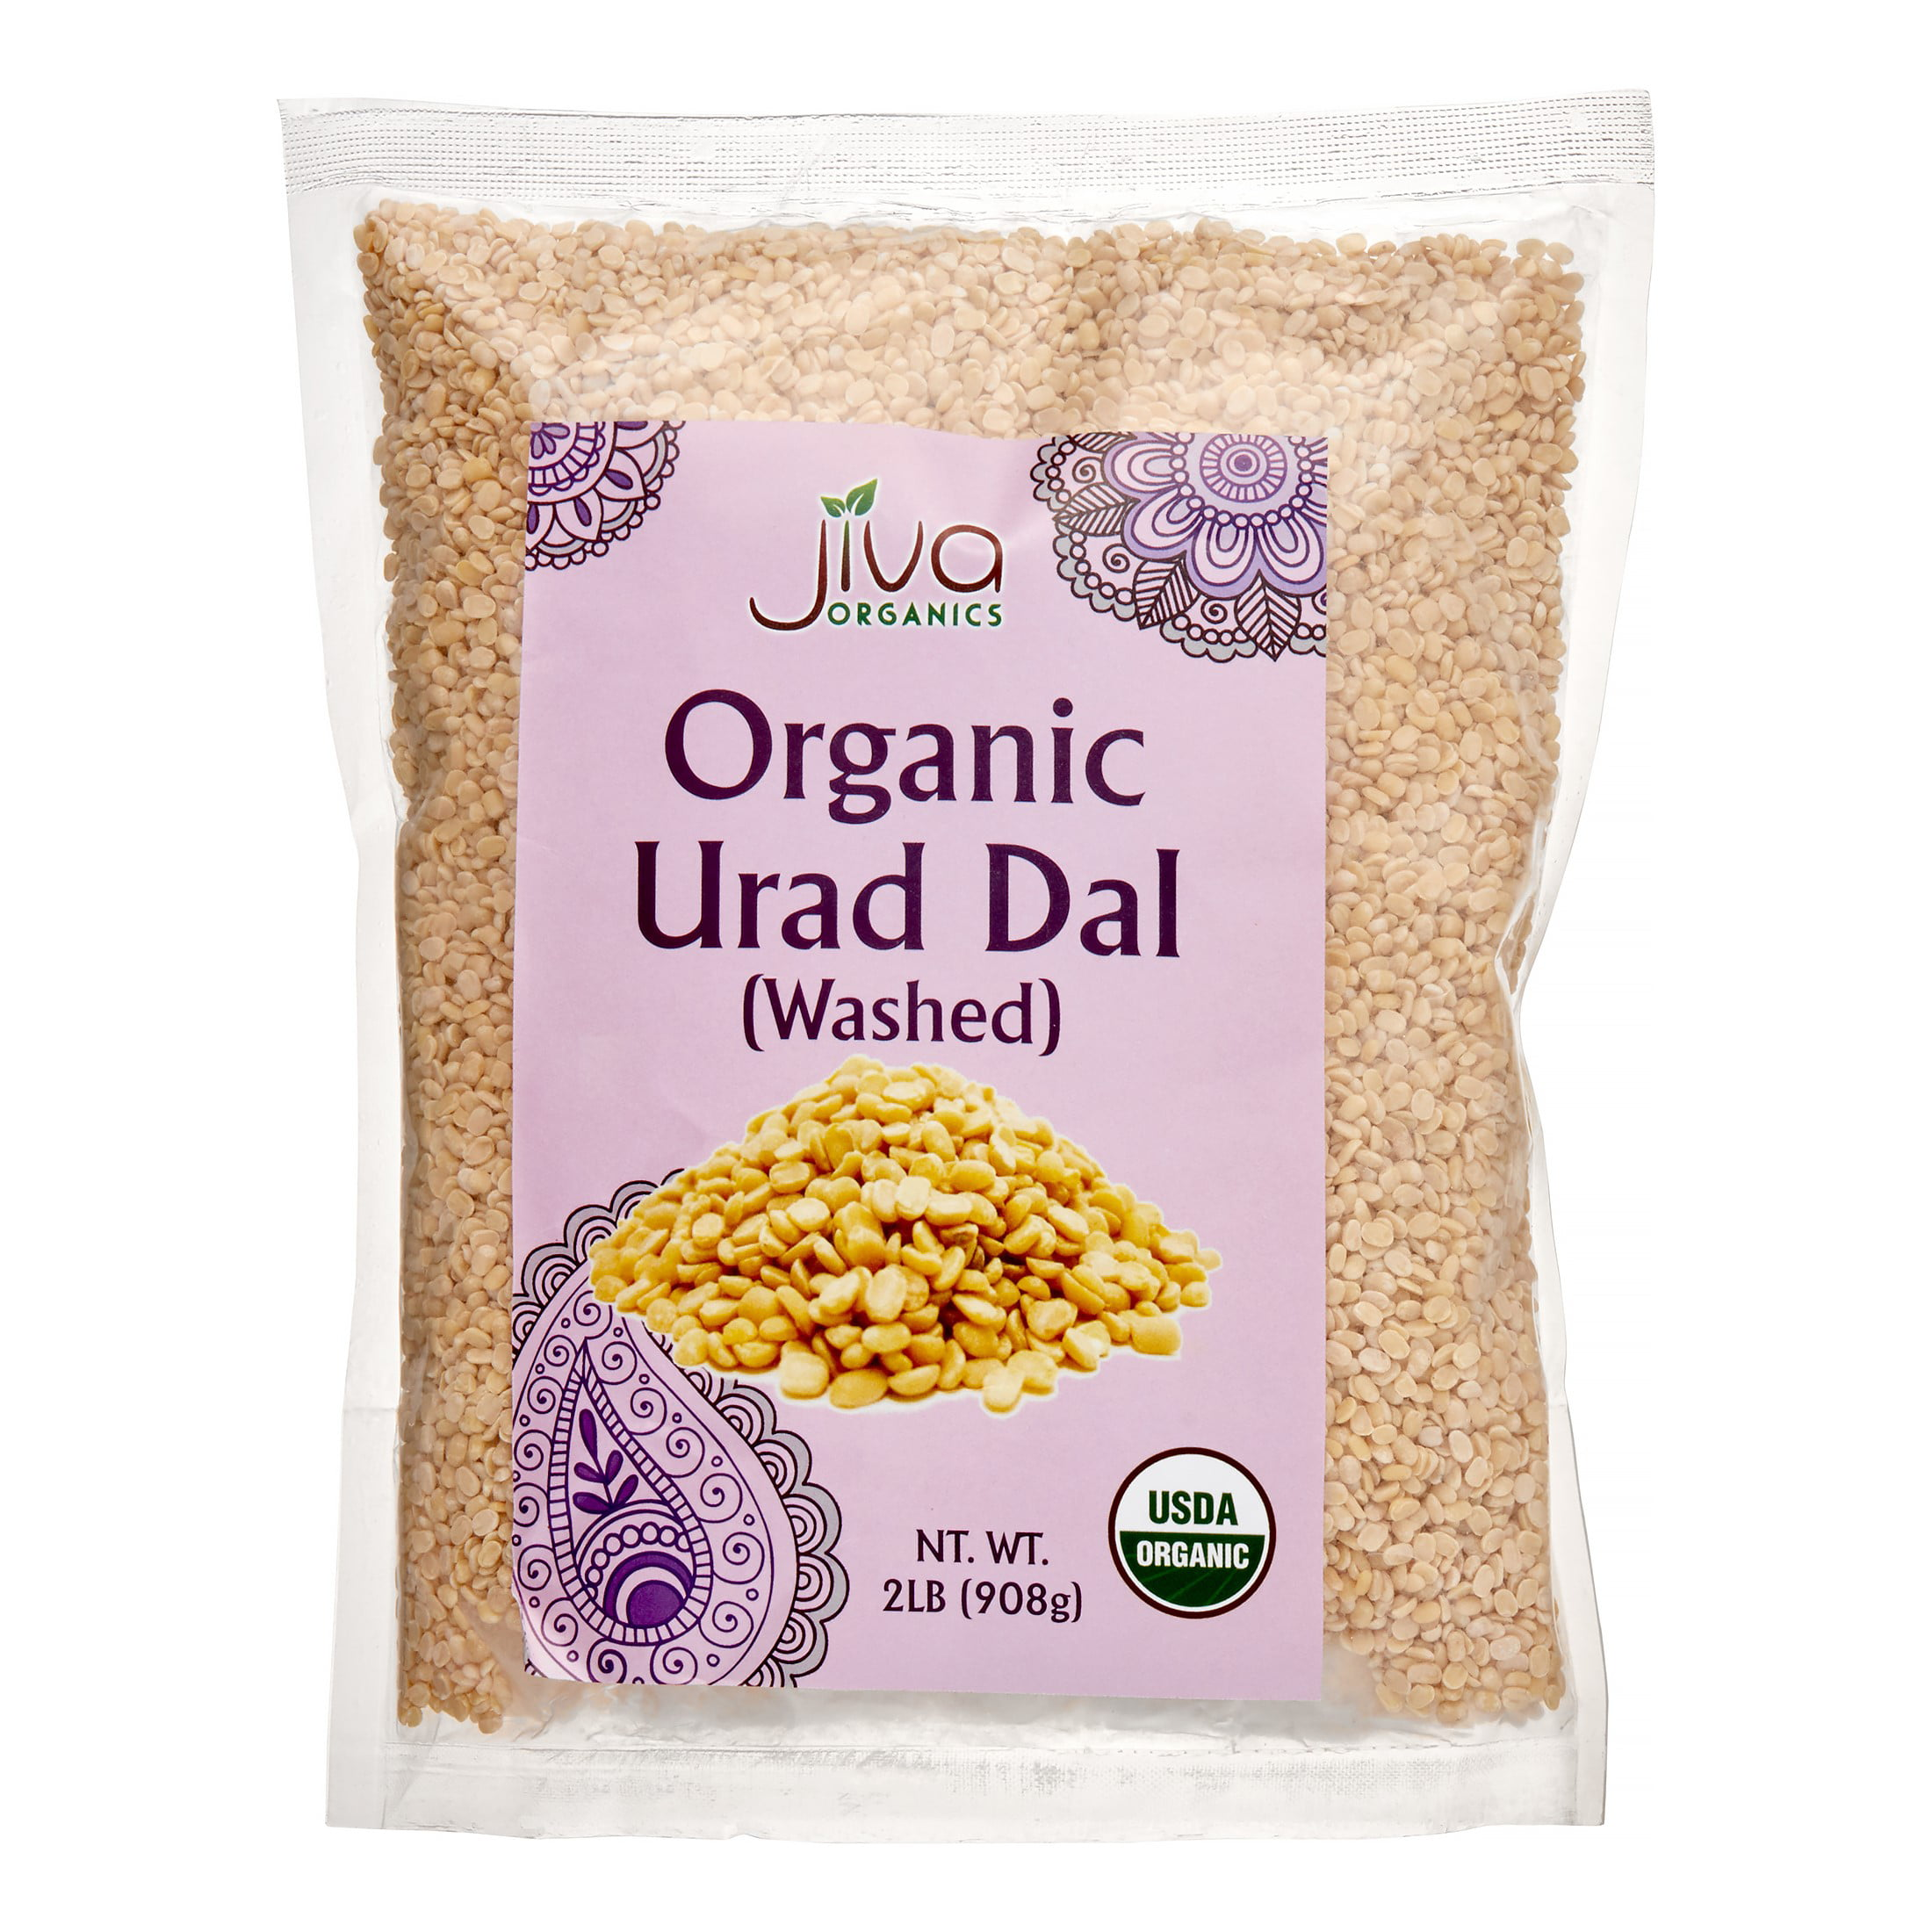 Jiva Organic Urad Dal White Washed, 2 Lb by Supplier Generic